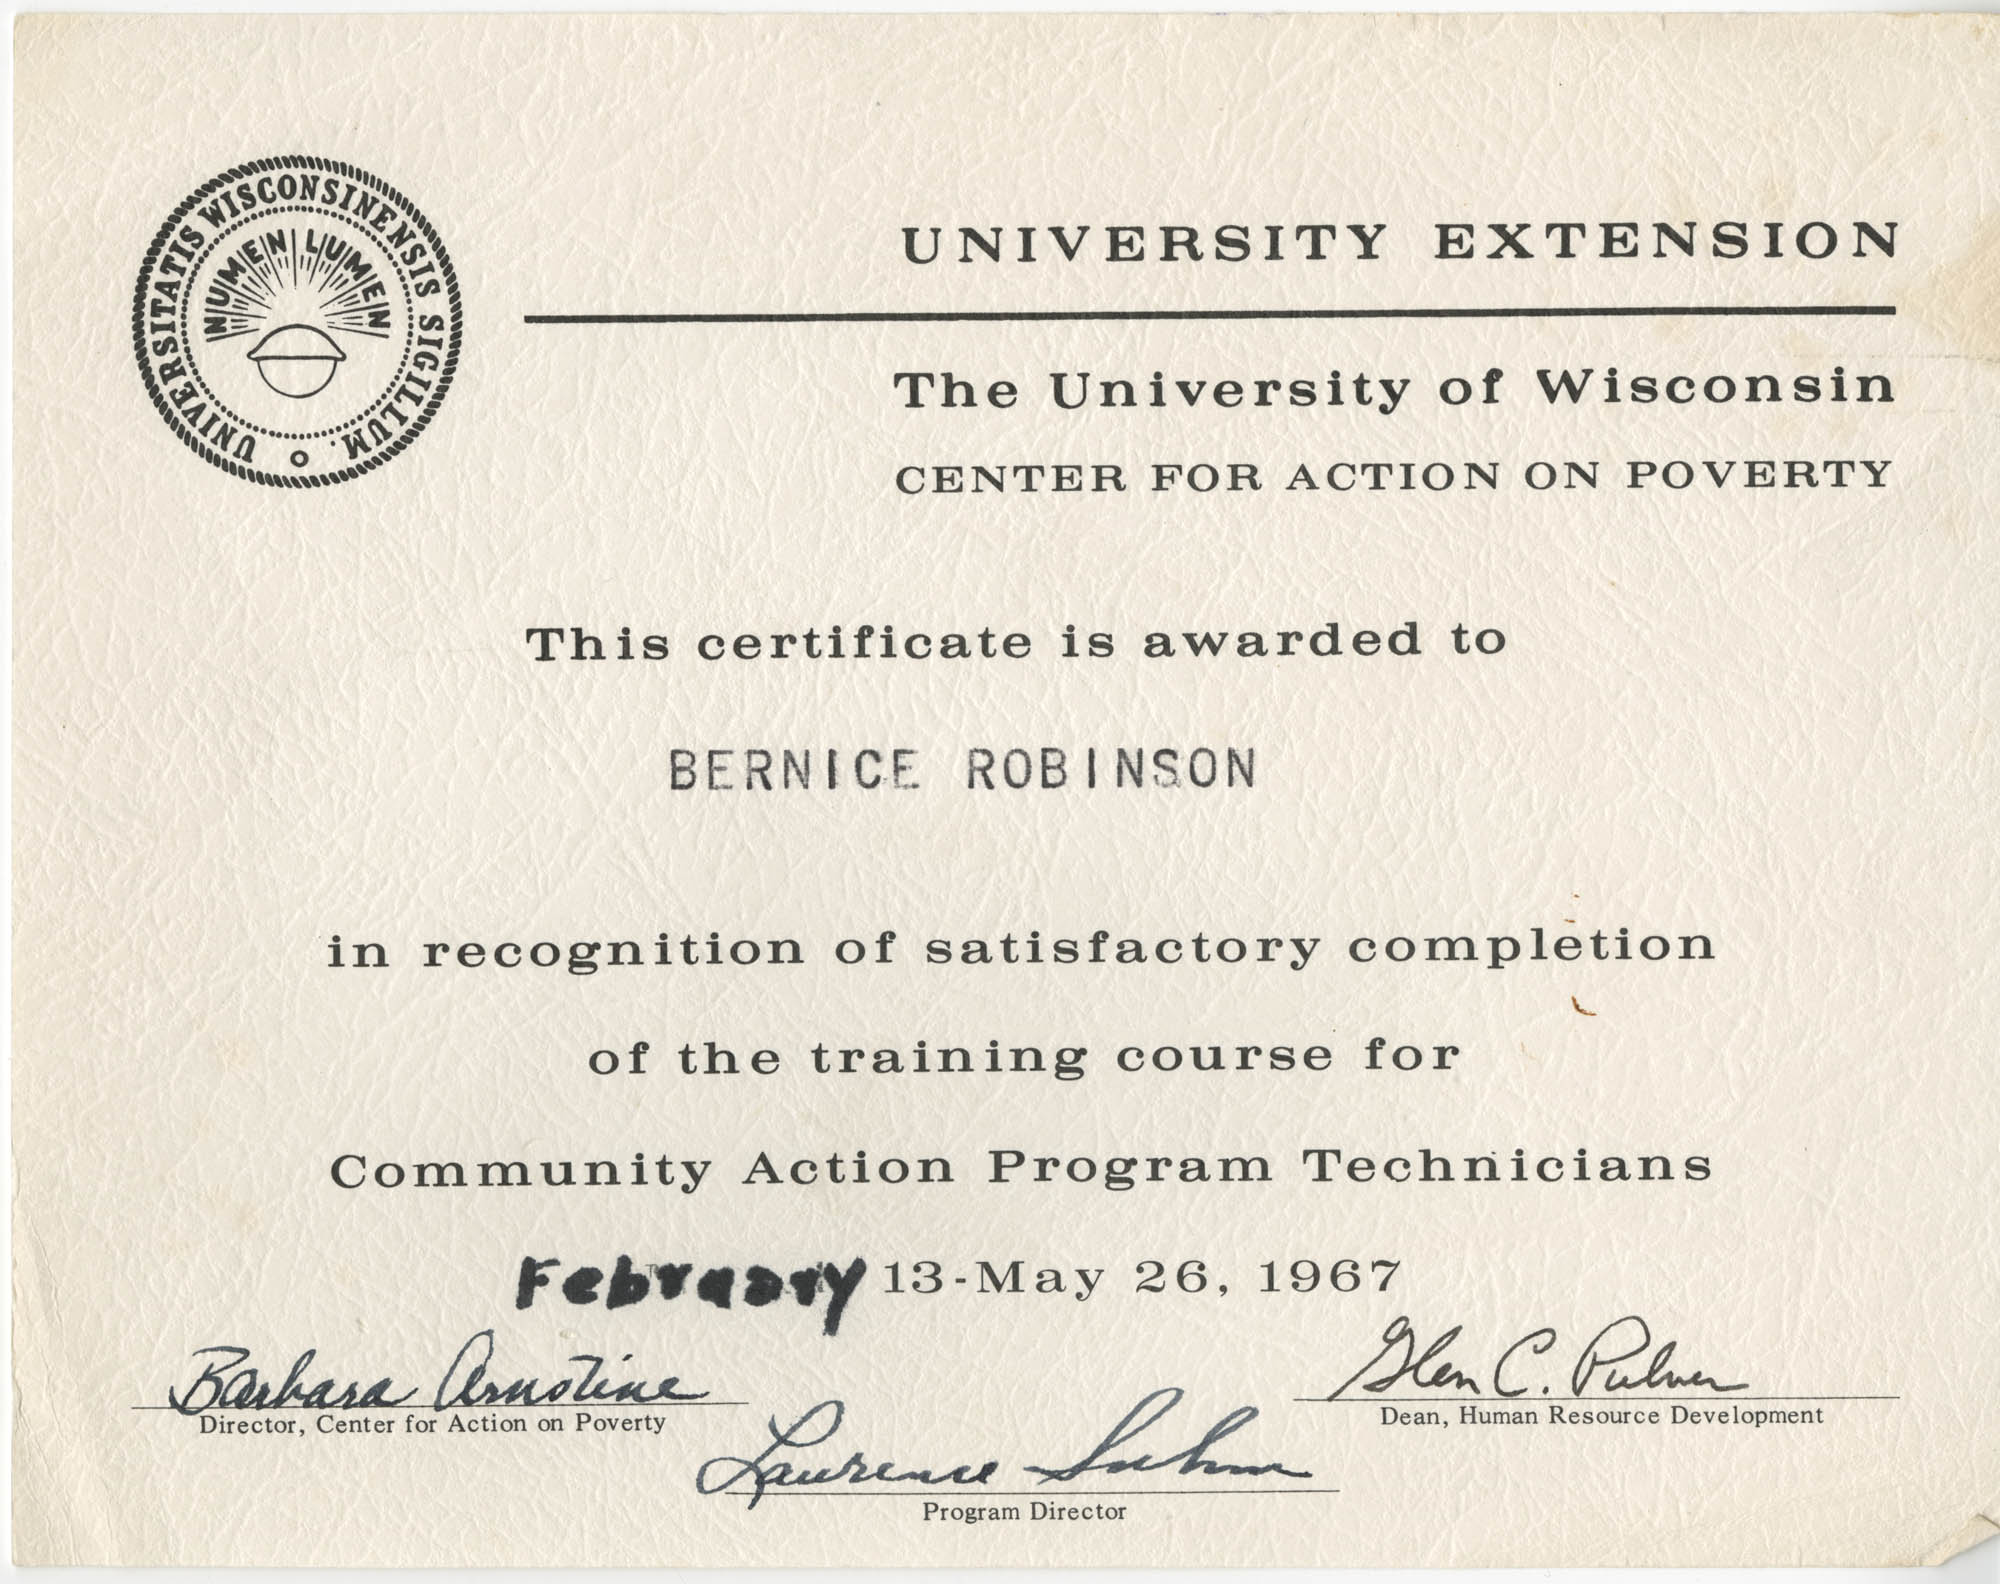 Bernice Robinson Community Action Program Technicians Certificate